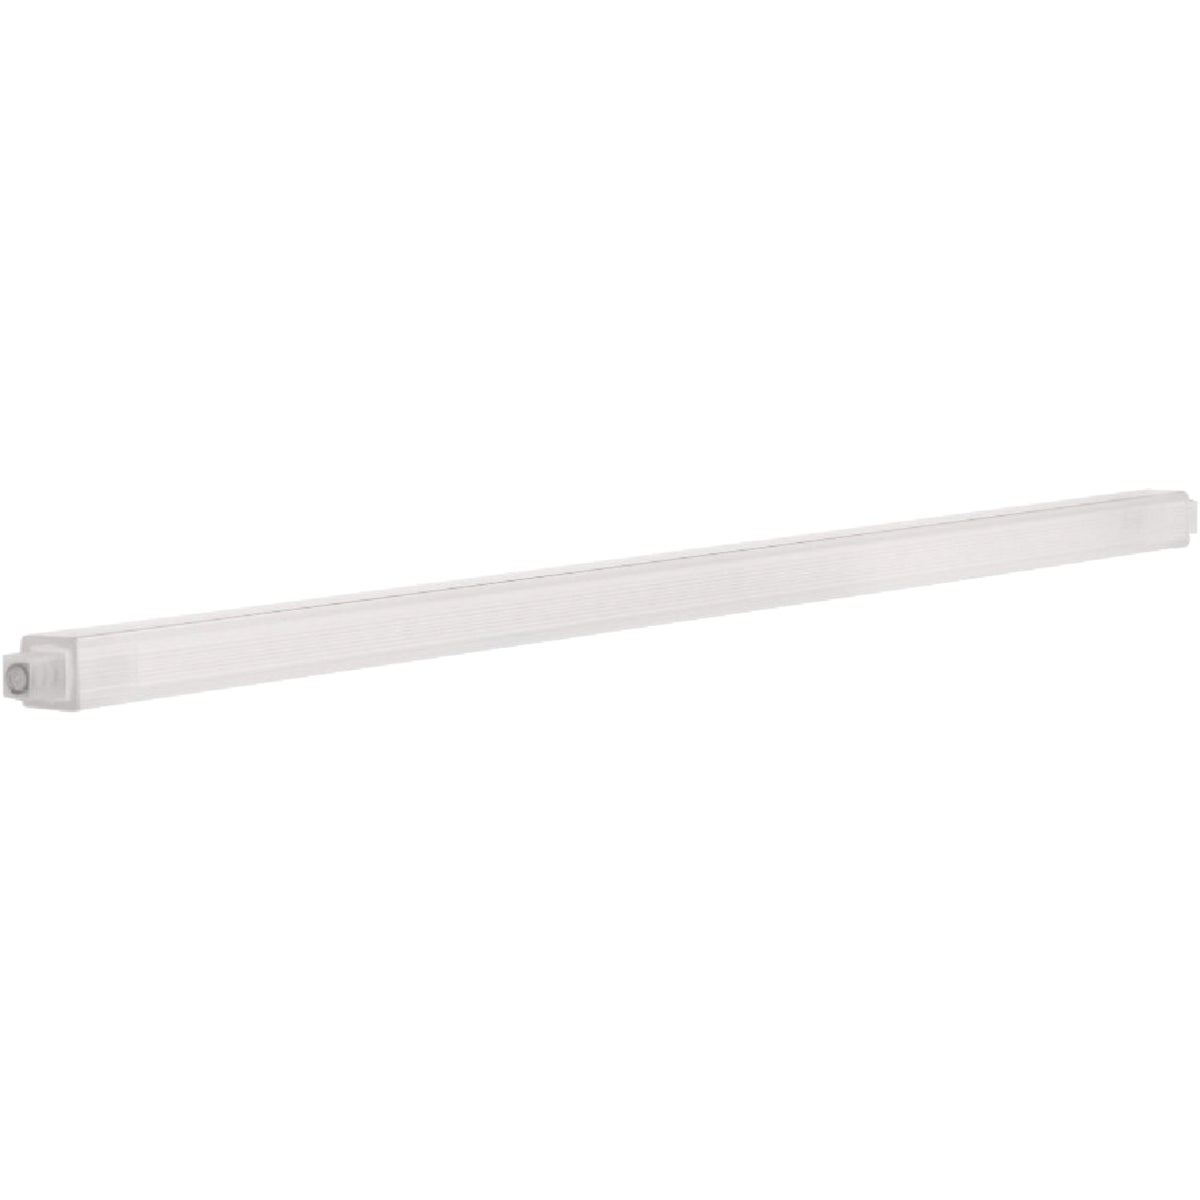 "24""CLR RPLCMNT TOWEL BAR - C225OC by Liberty Hardware"